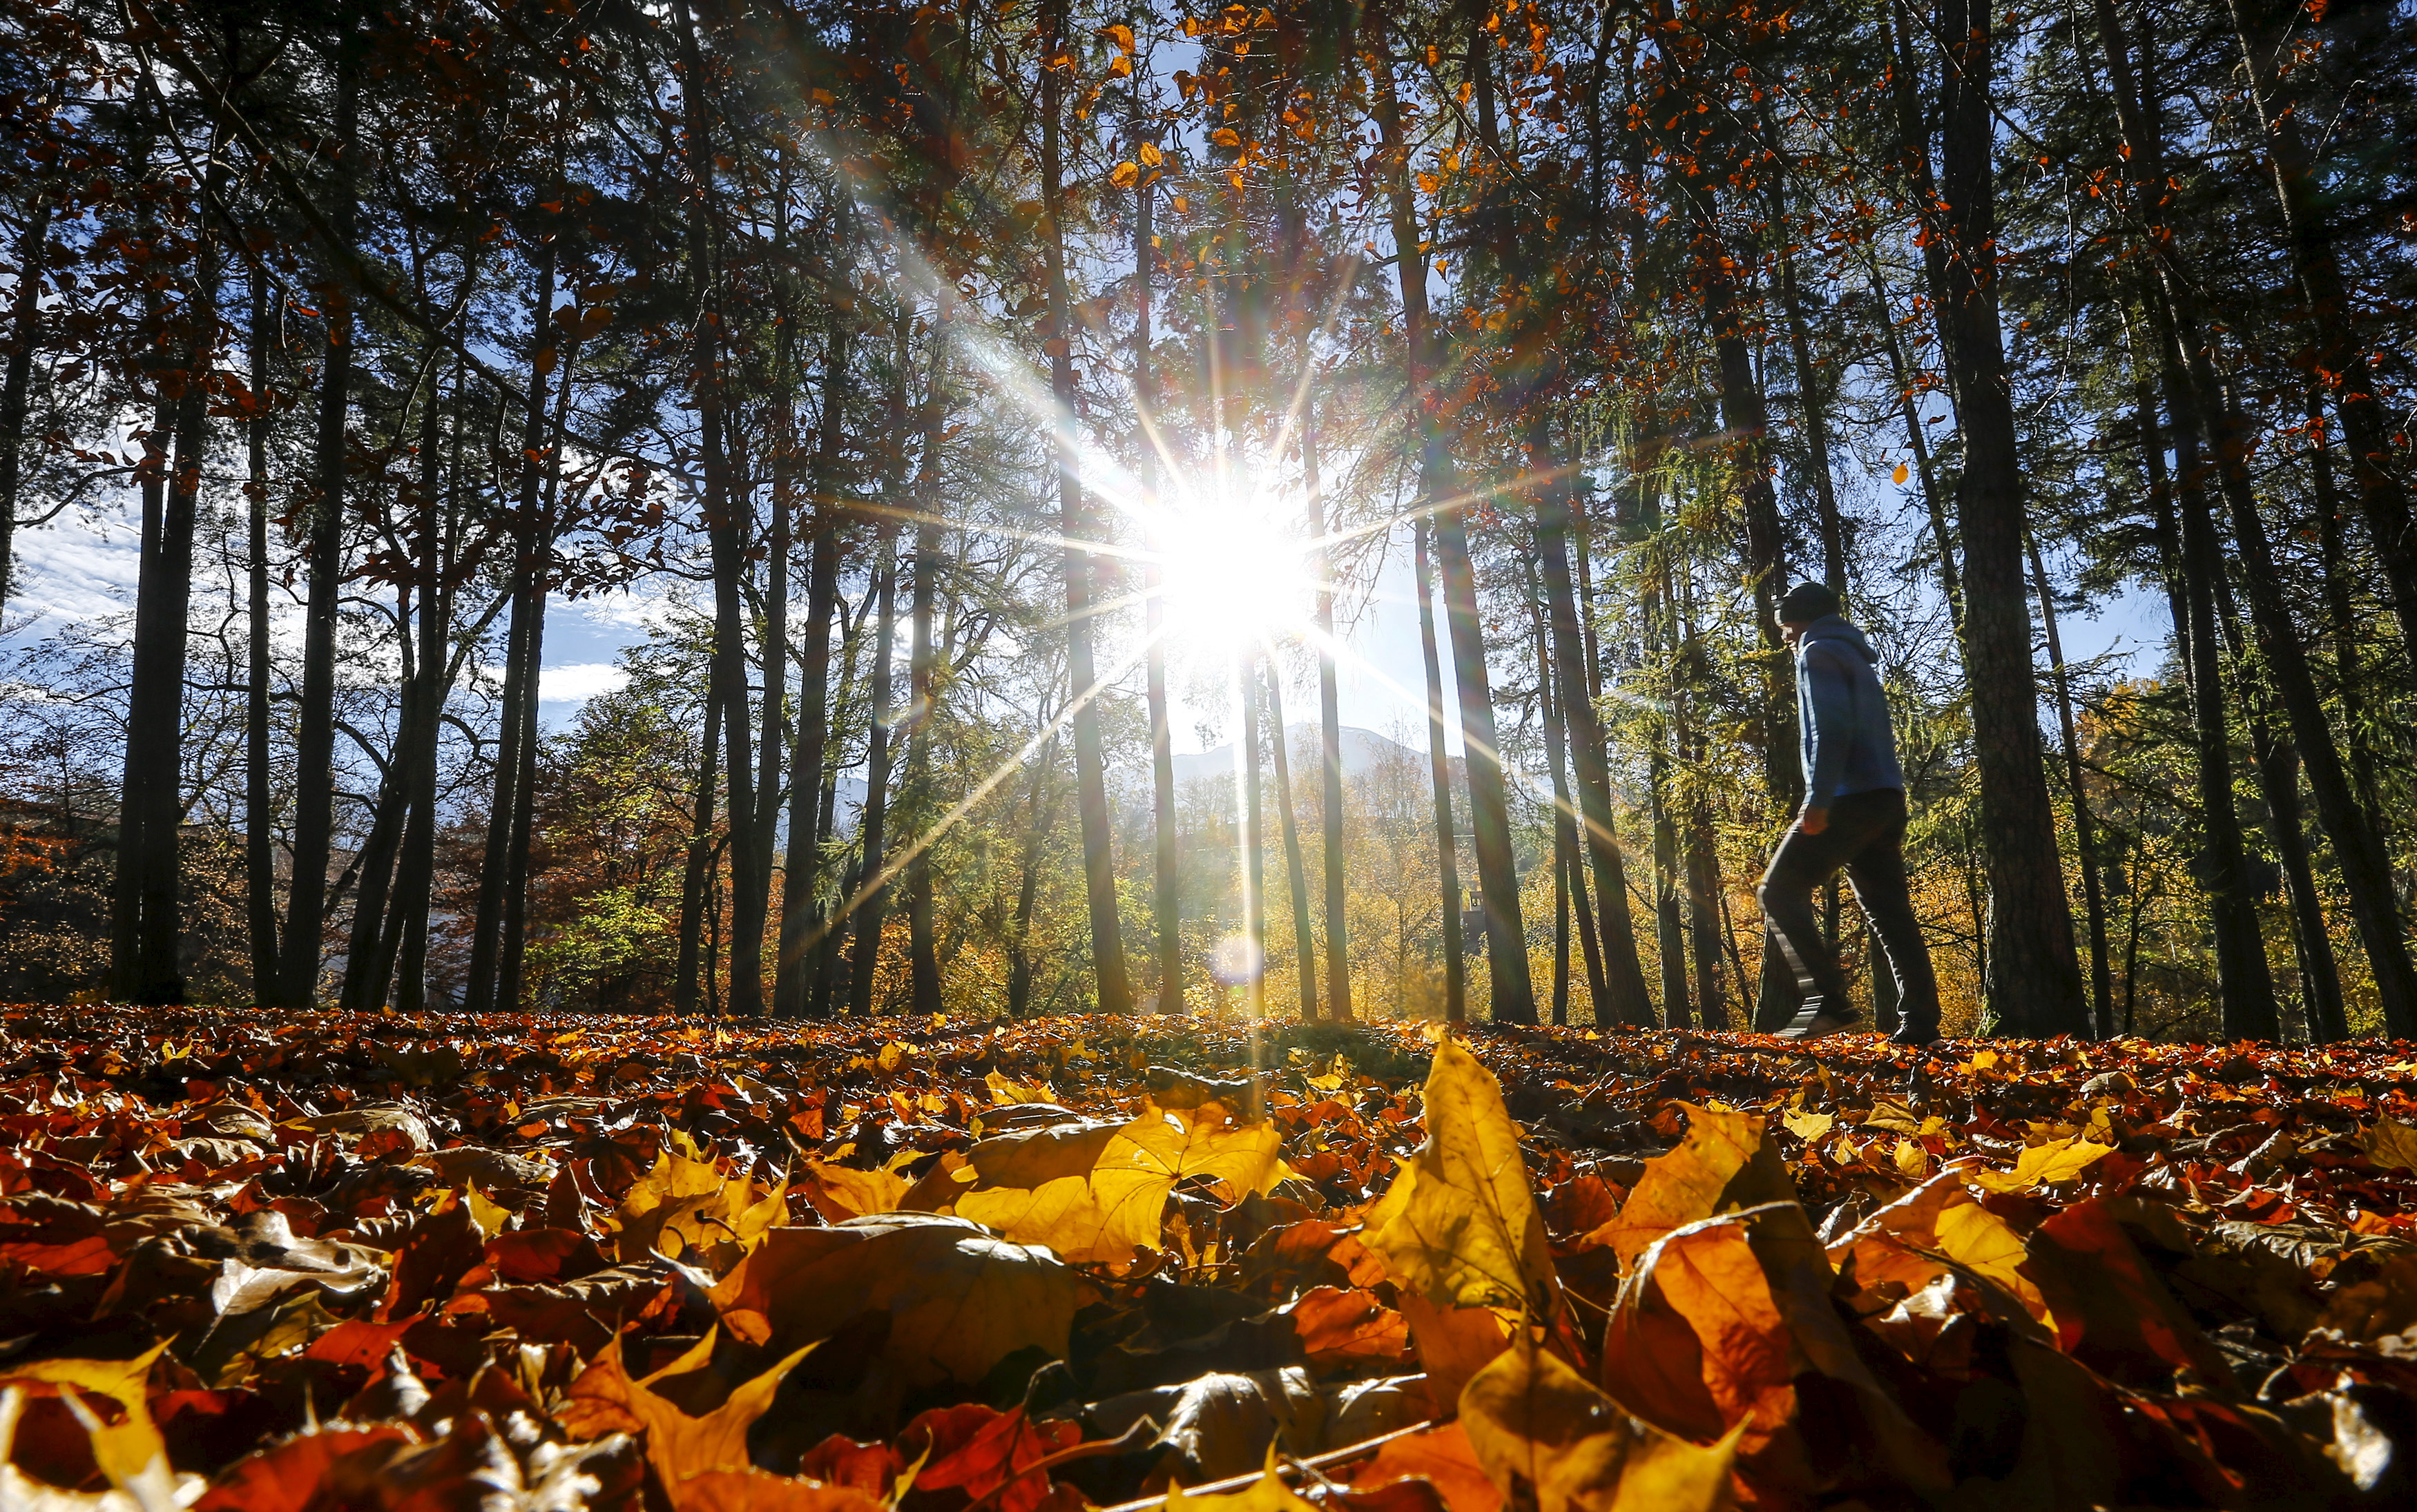 First Day Of Fall Quotes: 14 Excerpts About Autumn From ...